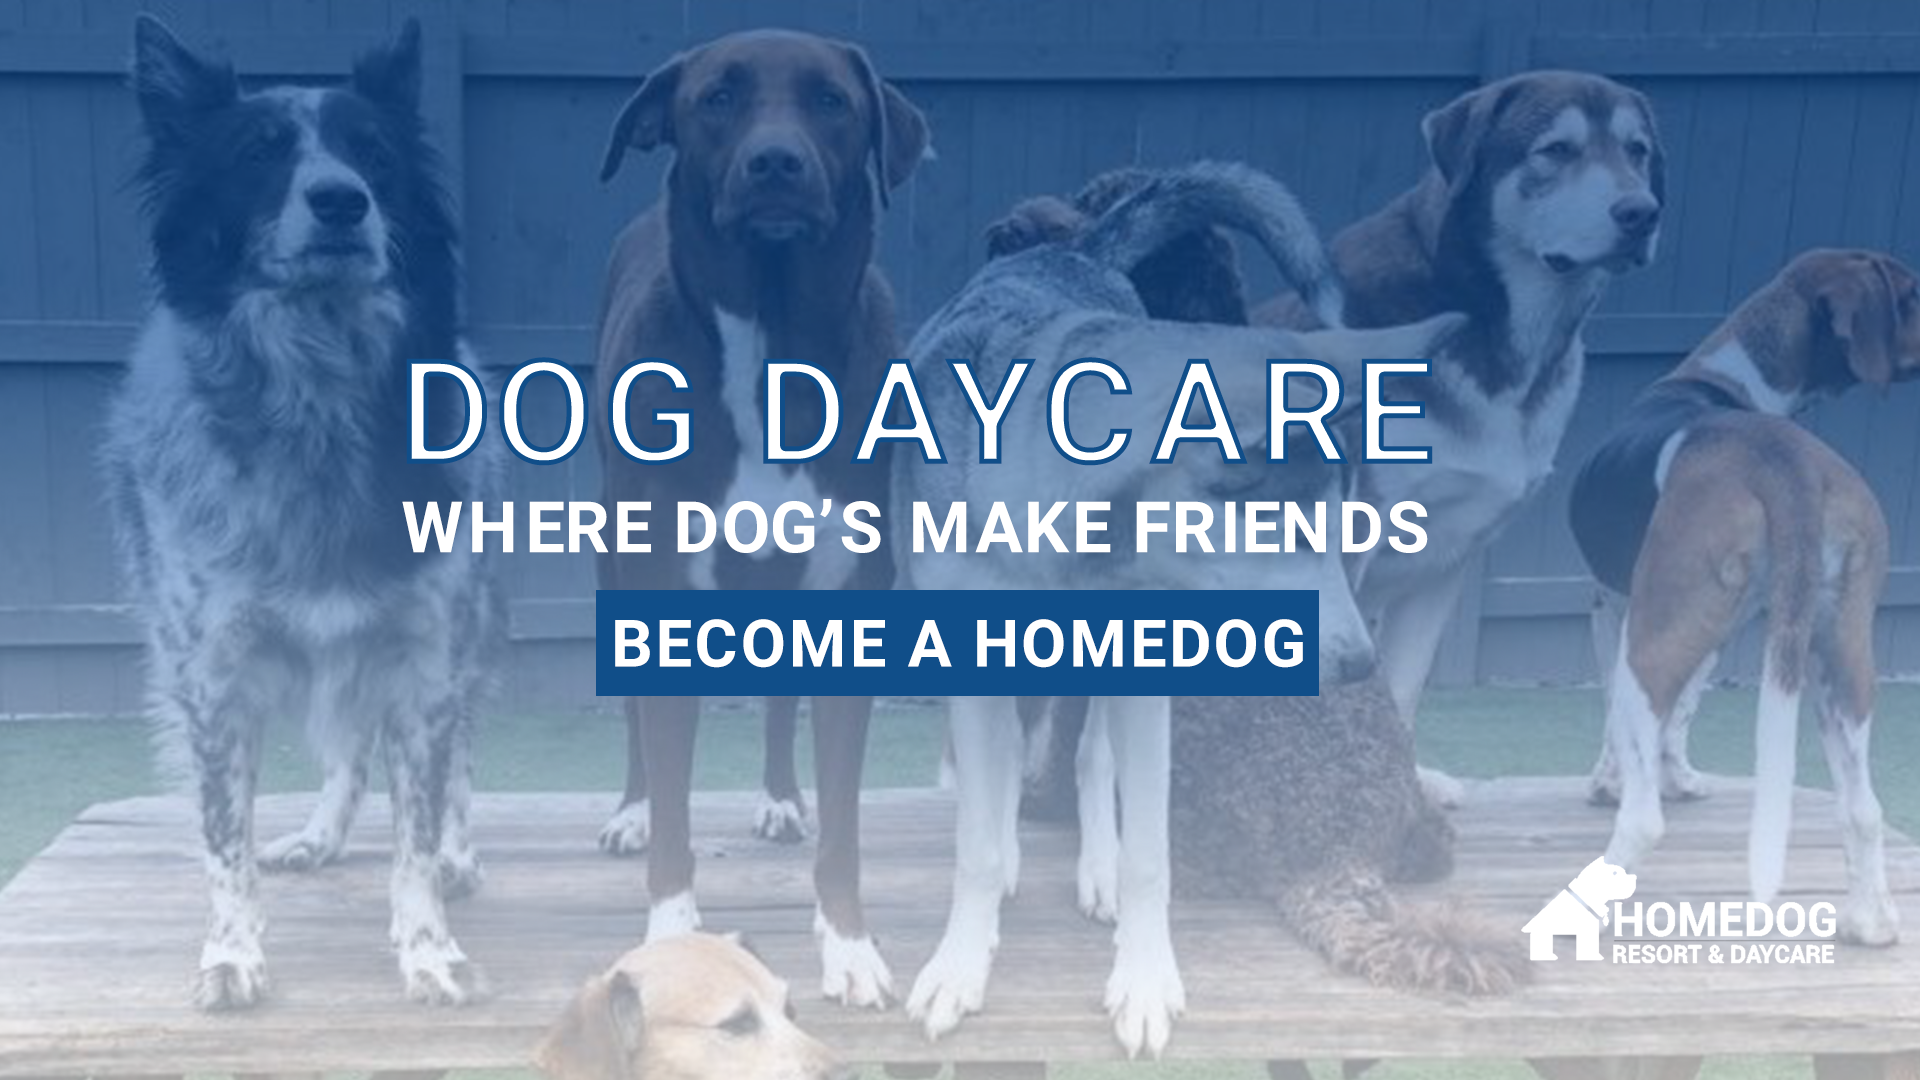 dogs enjoying dog daycare at homedog resort & daycare in downtown Columbus, Ohio